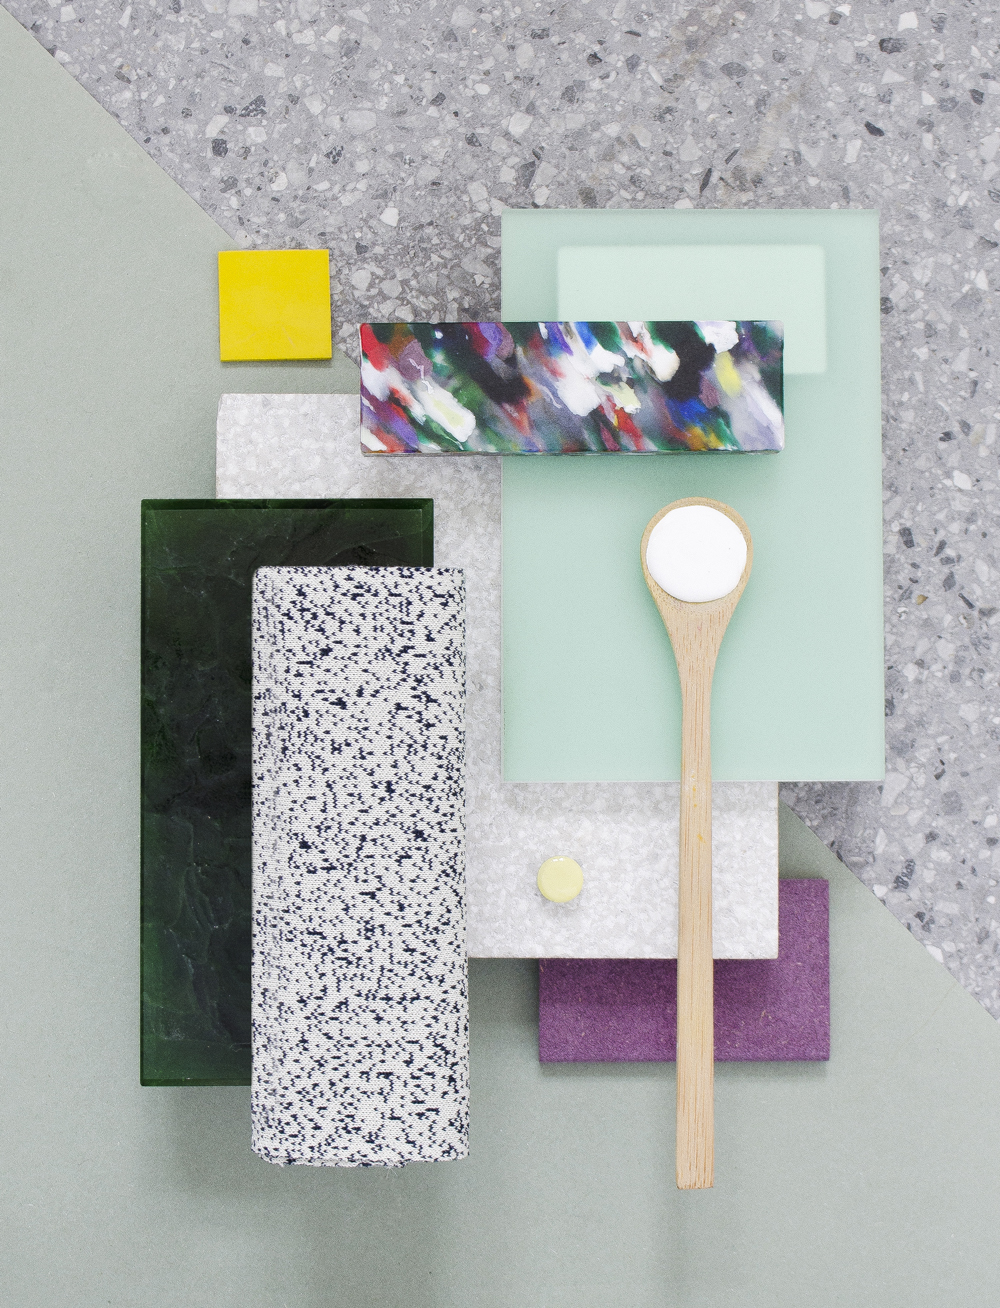 Studio David Thulstrup moodboard-materials-3